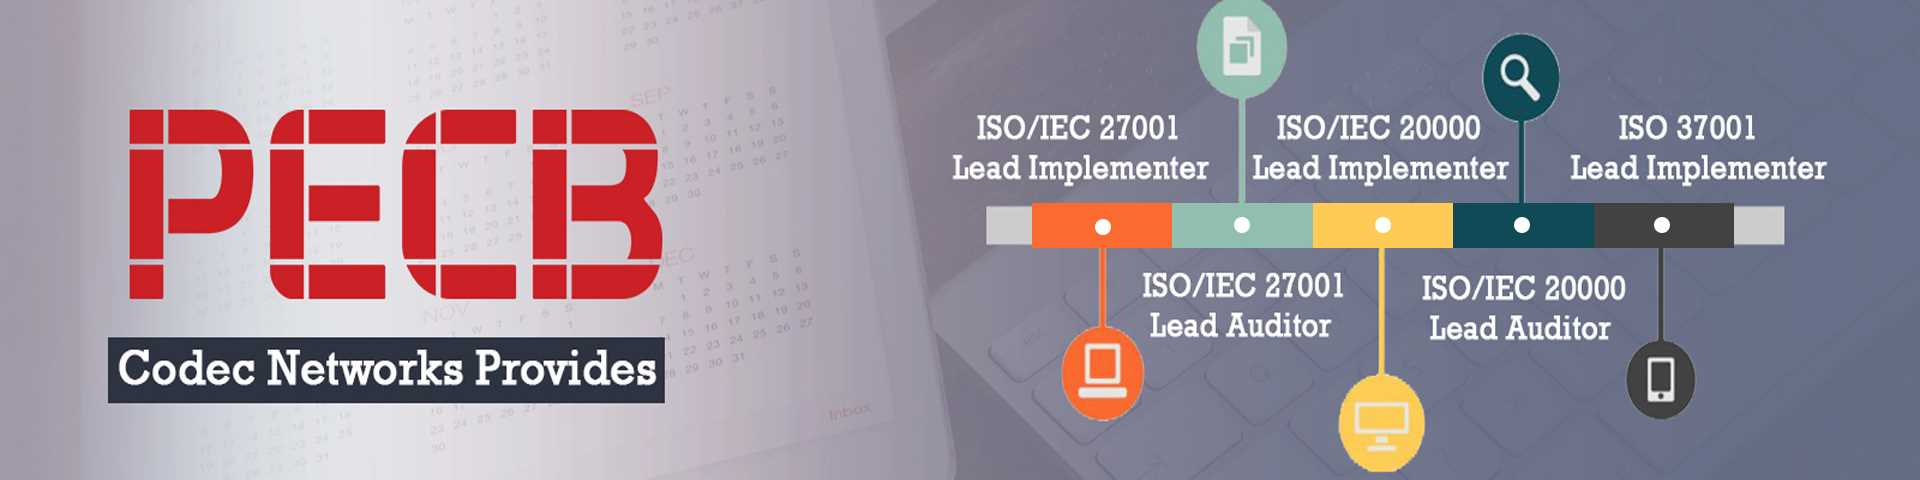 ISOIEC 27001 Implementer